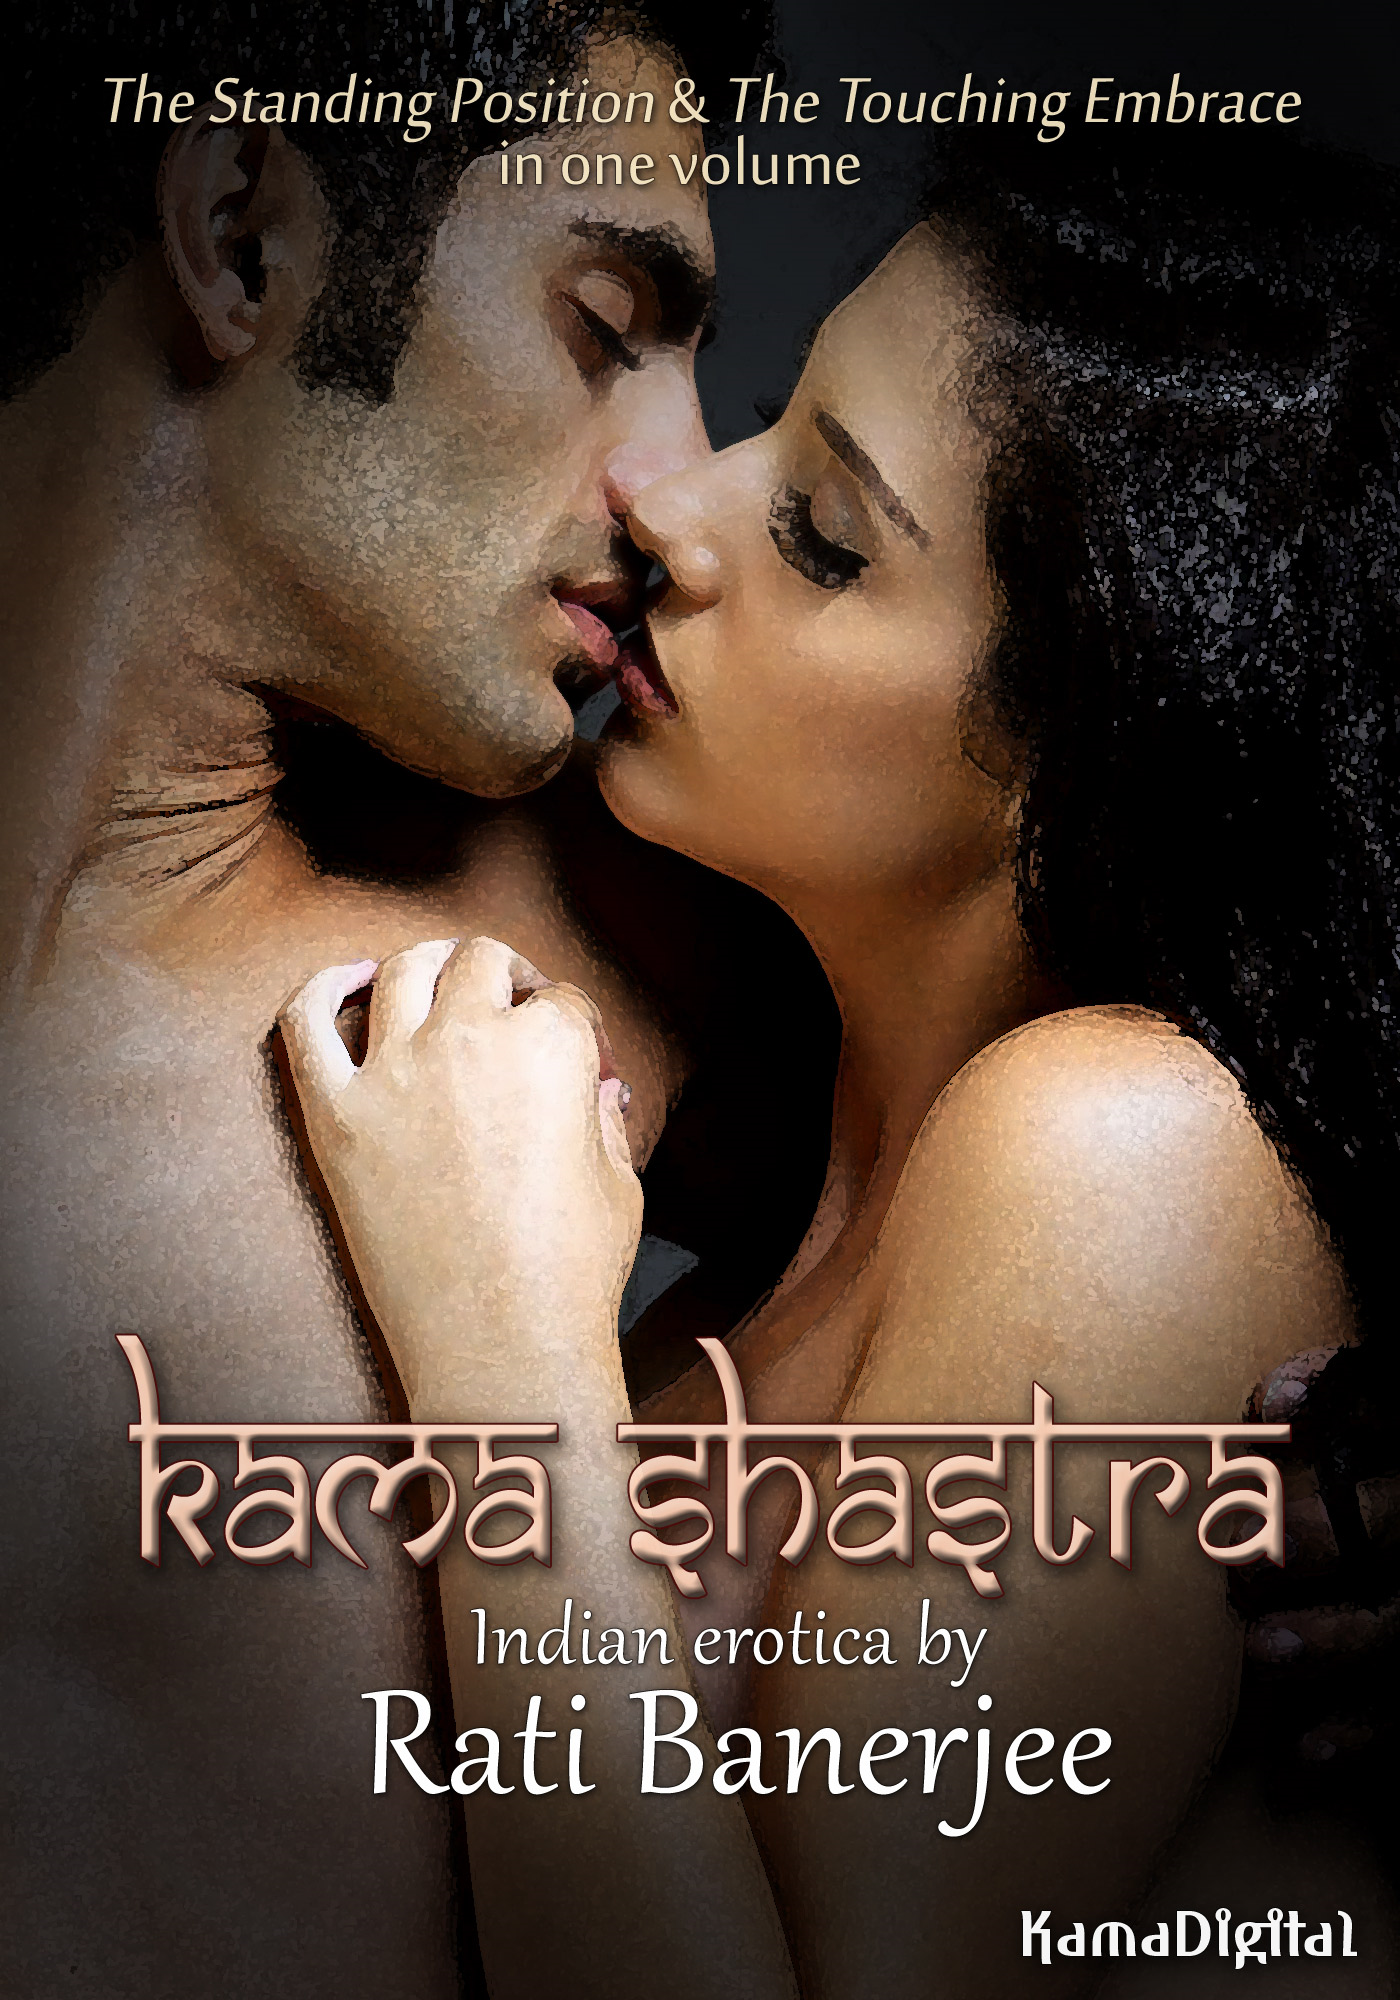 Kama Shastra: eight stories of Indian erotica in one volume (including adultery, open marriages, wealthy alpha males, and explicit scenes of threesomes, group sex and public sex)